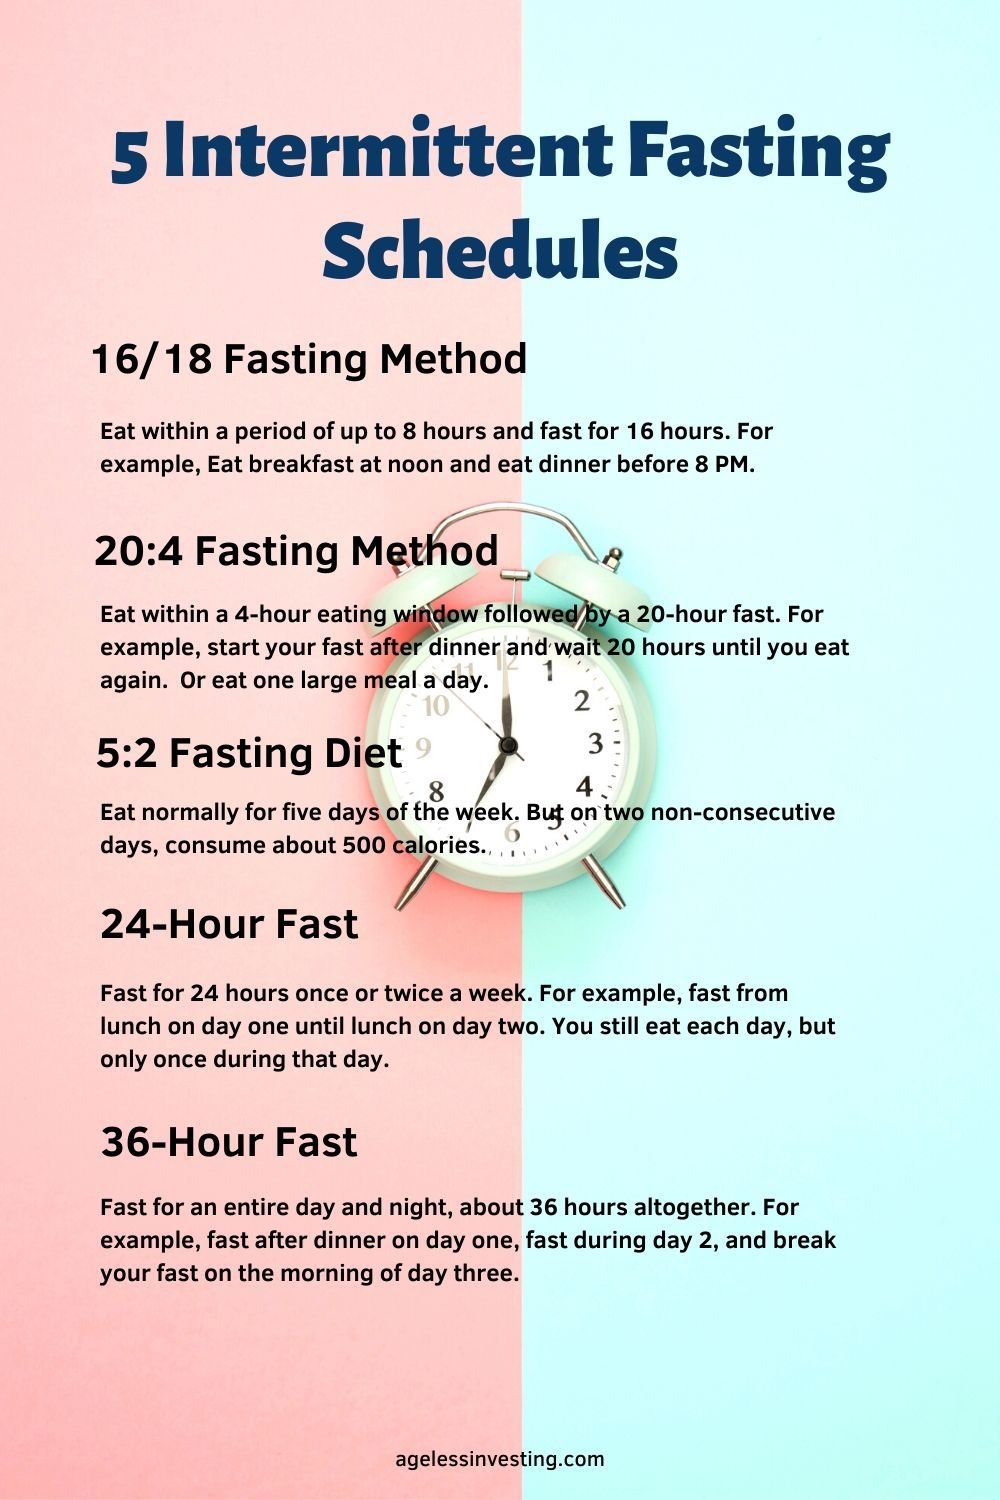 5 Most Popular Intermittent Fasting Schedules and Times